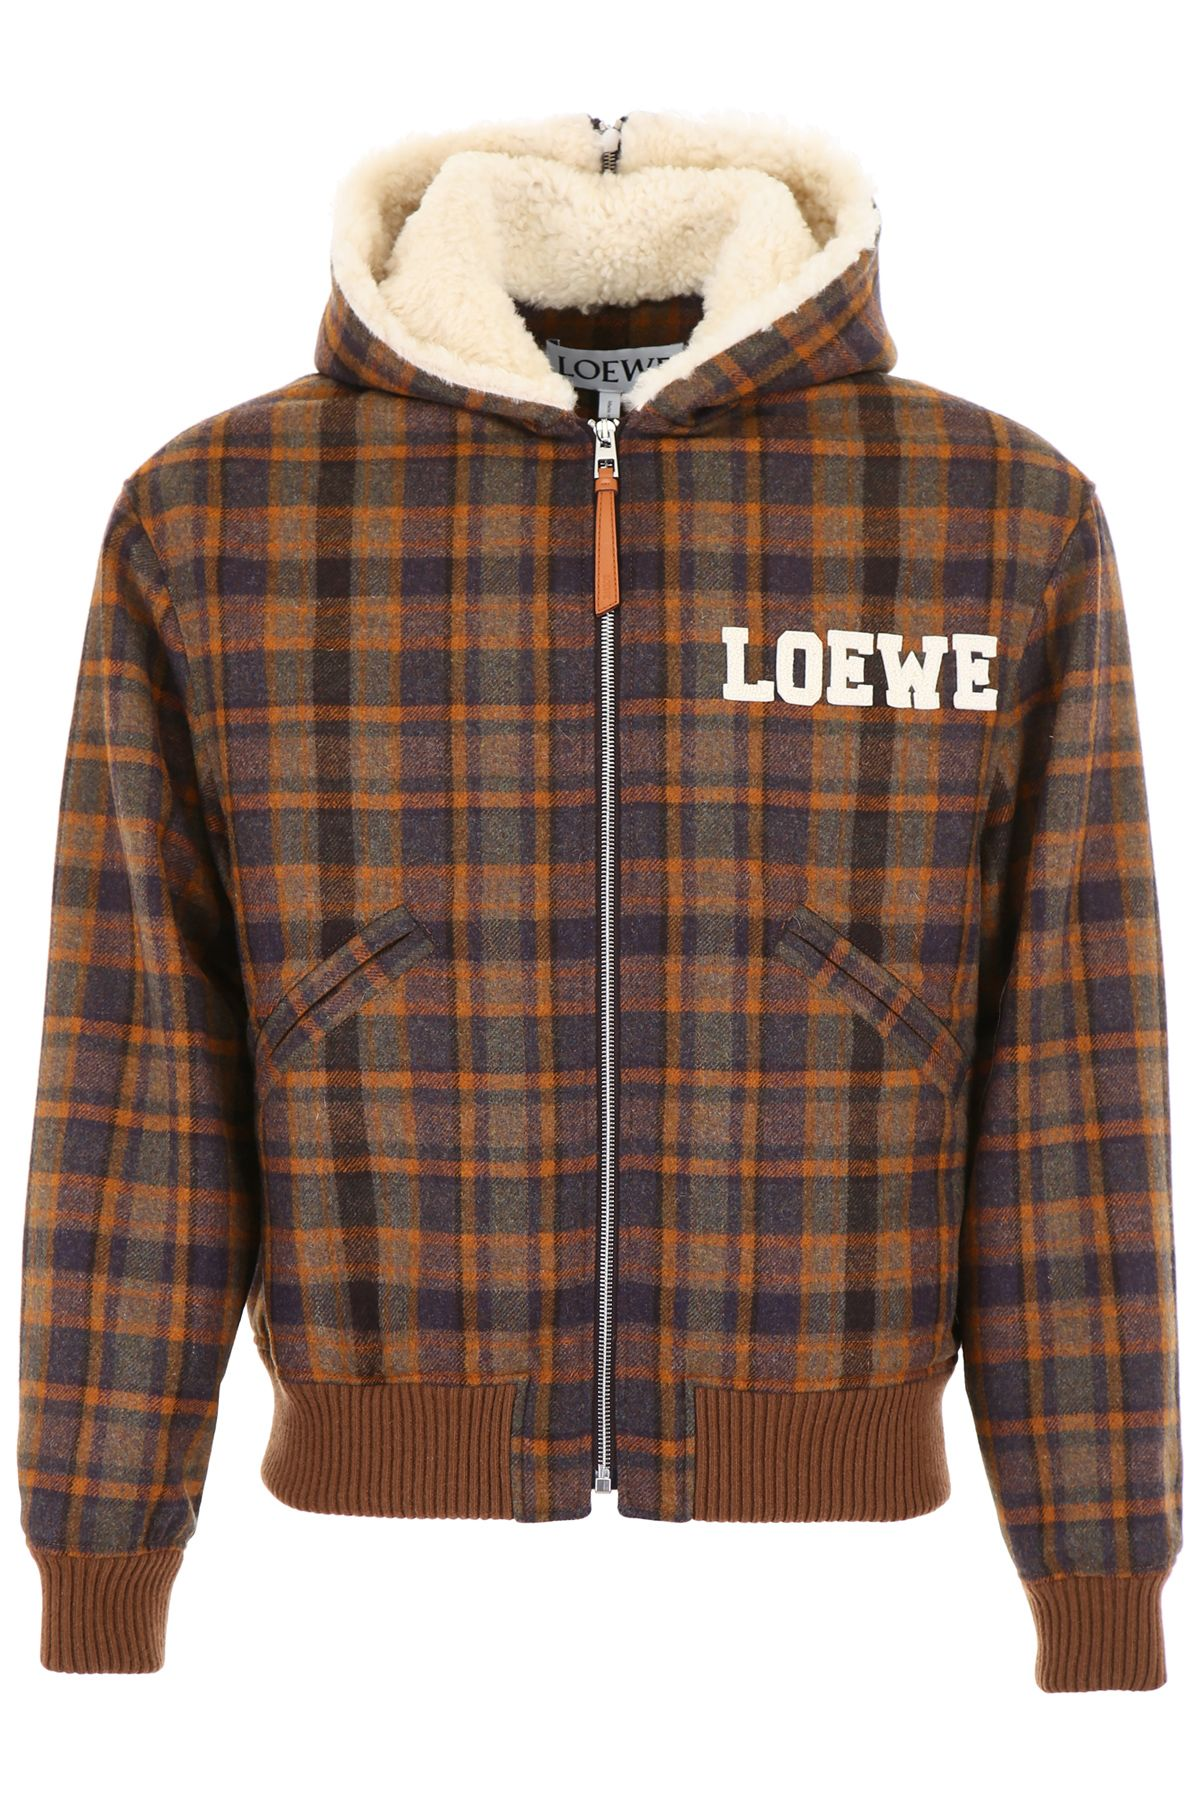 LOEWE CHECK JACKET WITH SHEARLING